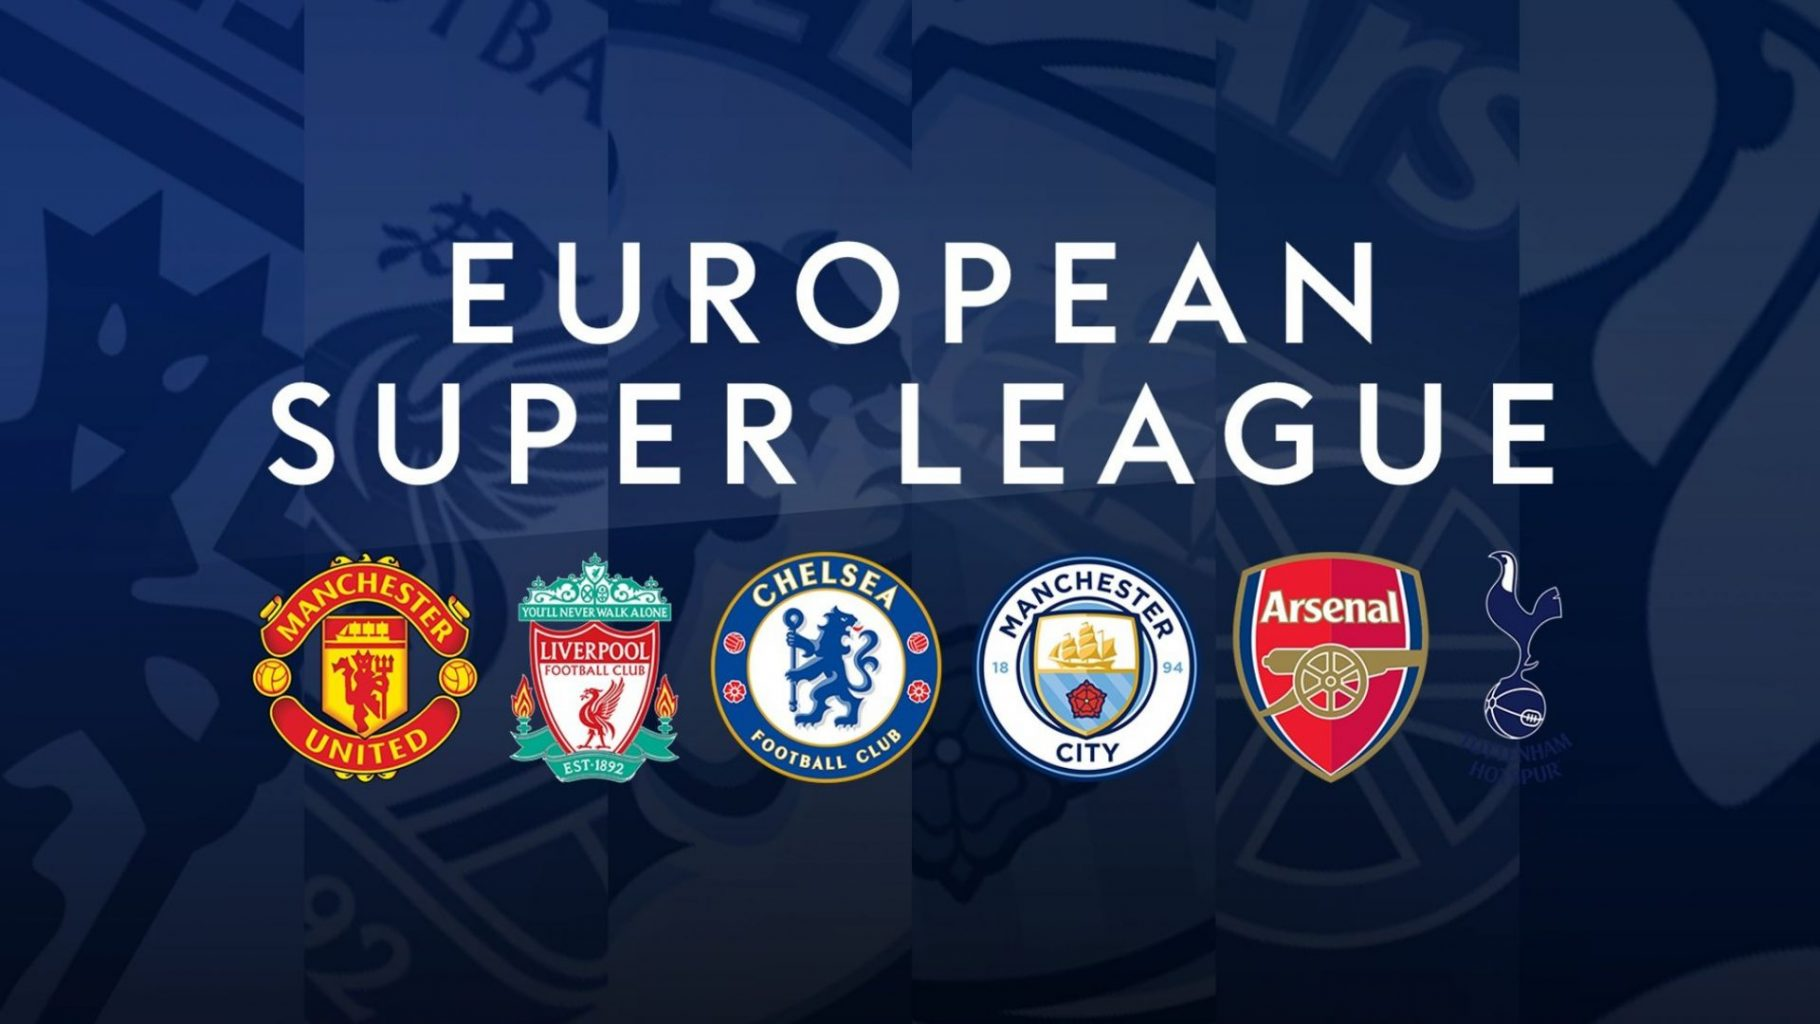 Super League Set To Sue UEFA Over Threat To Ban Barca, Chelsea, Real Madrid, Others